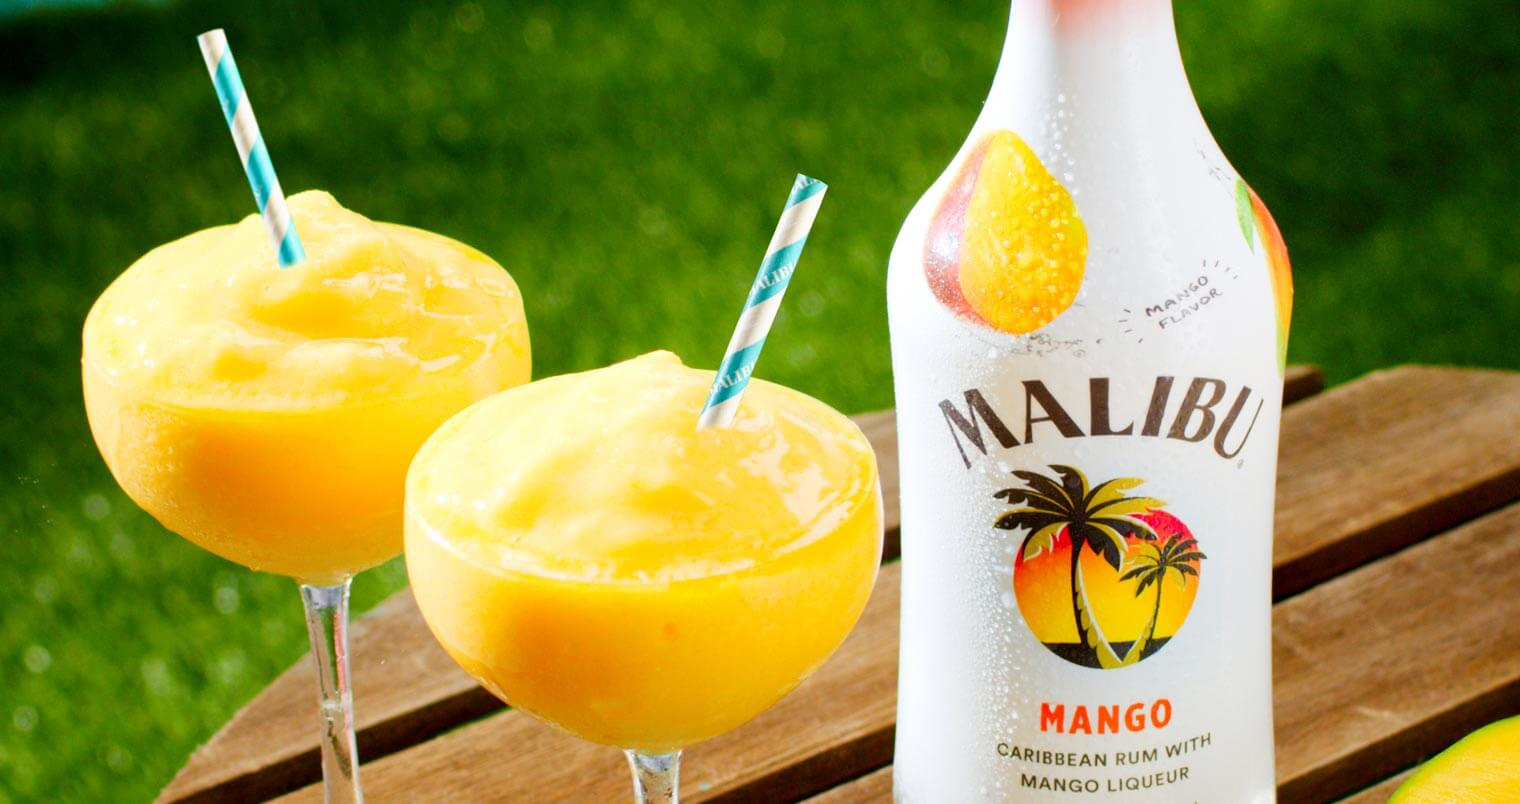 Malibu Mango Frozen Daiquiri, frozen cocktail with bottle, wooden round table, featured image